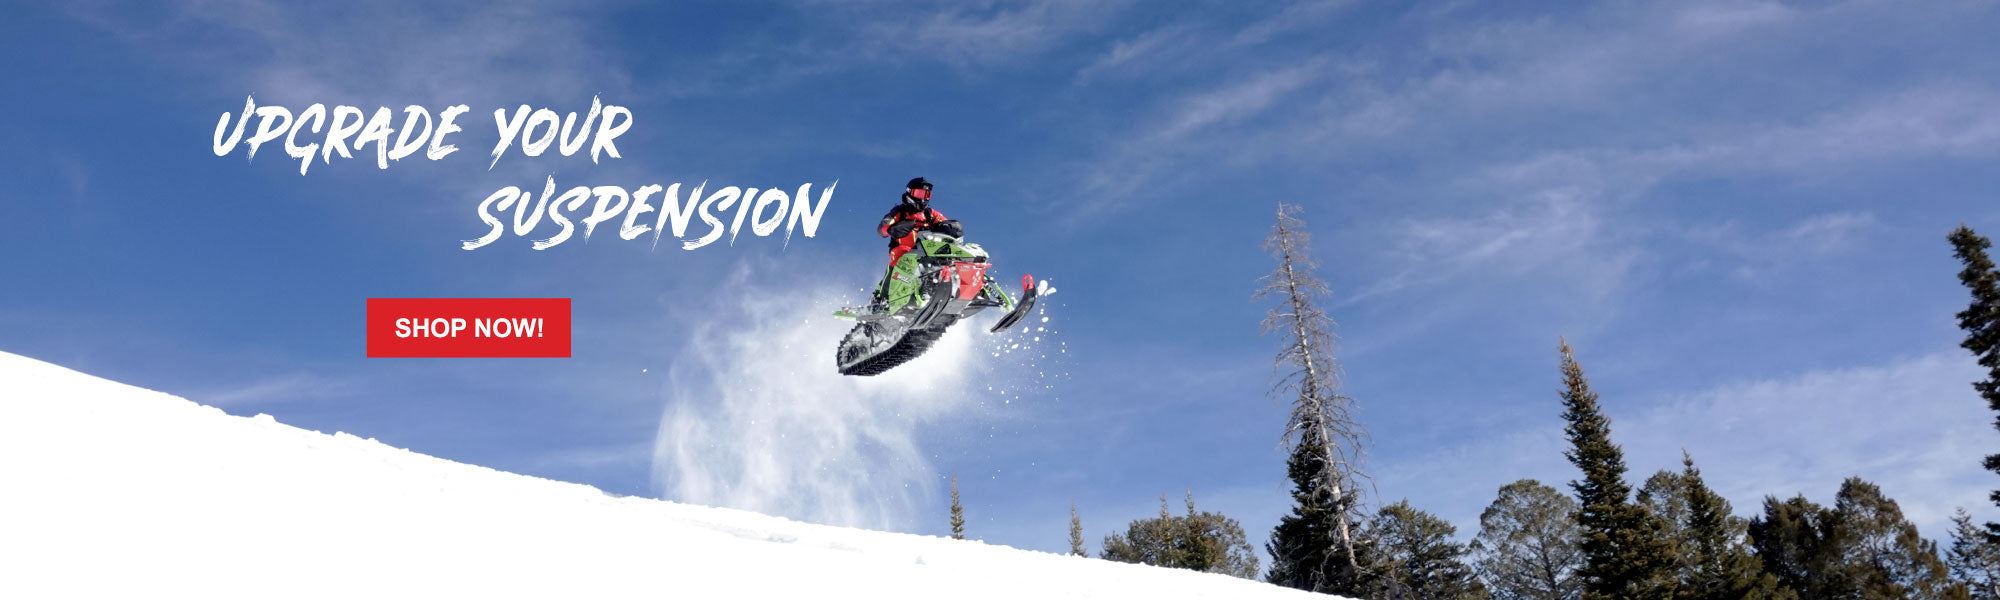 Zbroz Racing Snowmobile Suspension Products - Desktop